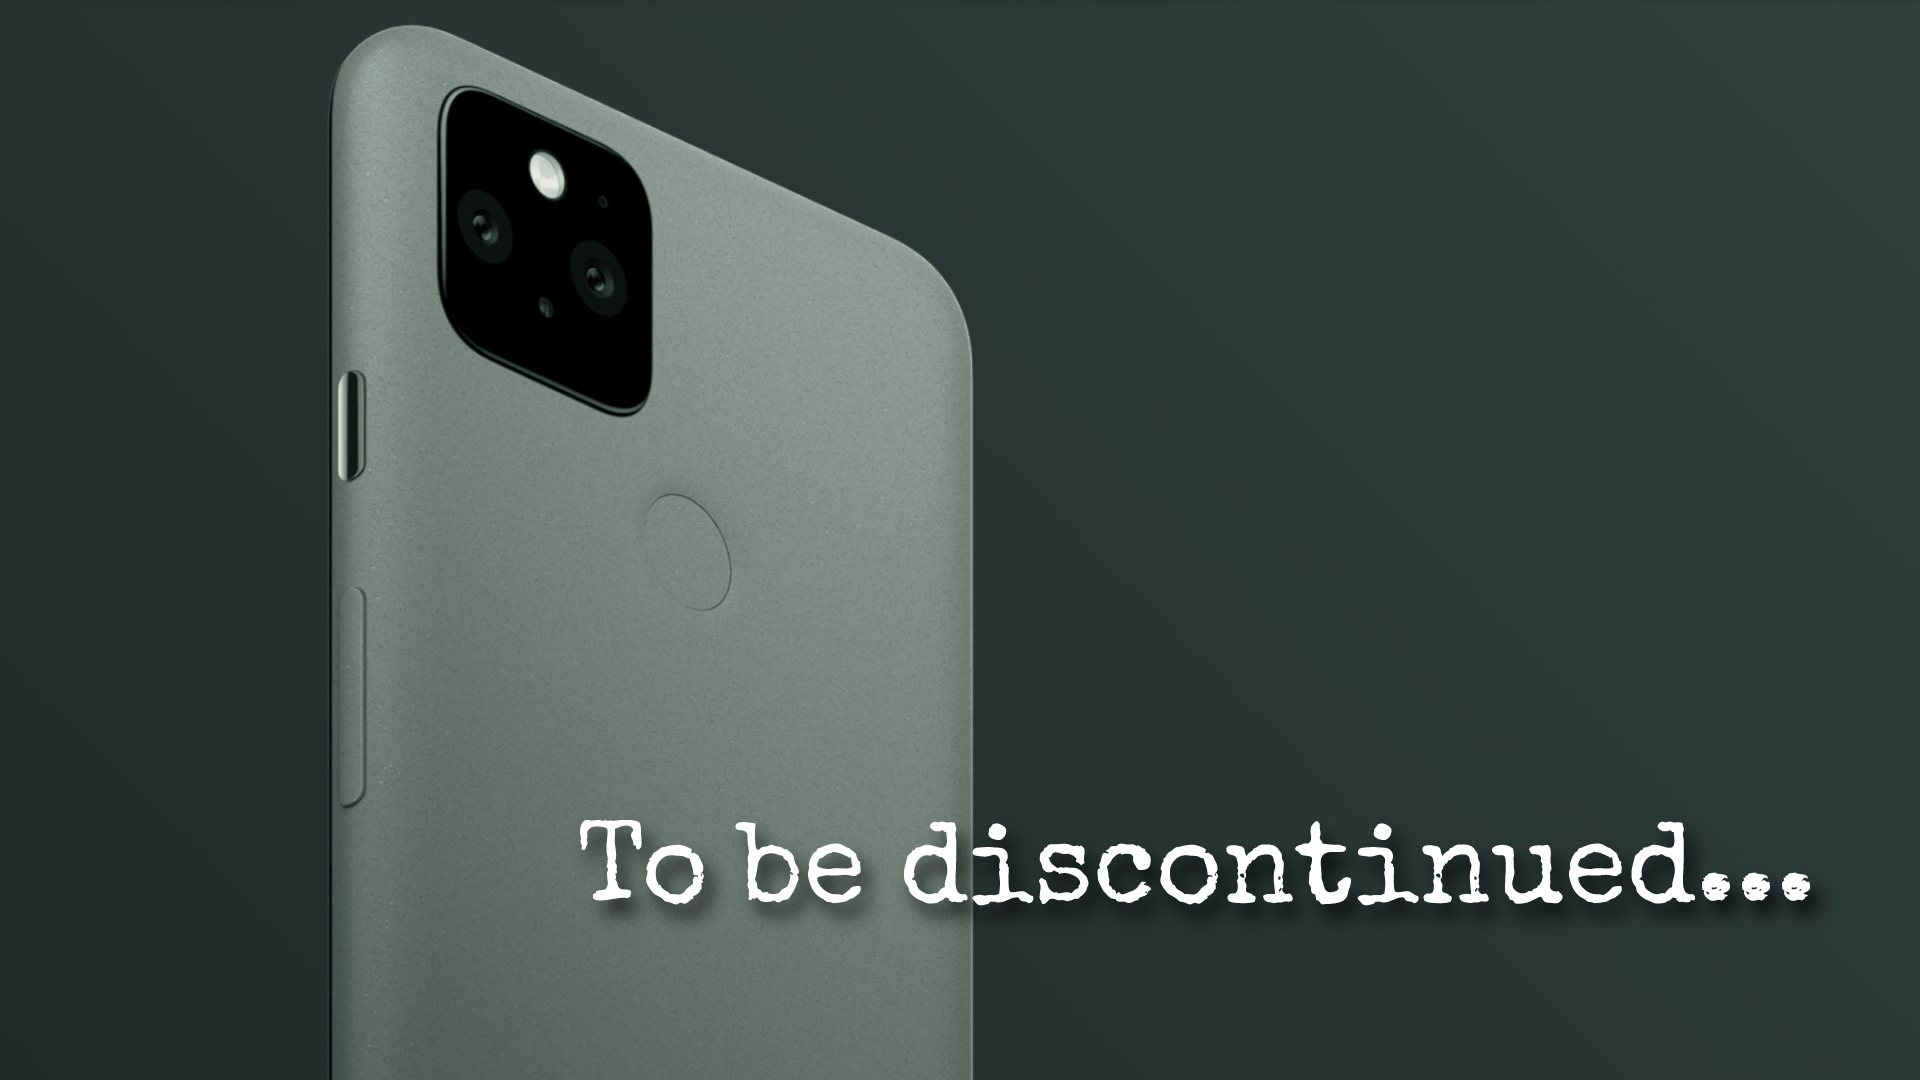 Why the Pixel 5 and Pixel 4a 5G being discontinued makes sense for the Pixel 6 launch